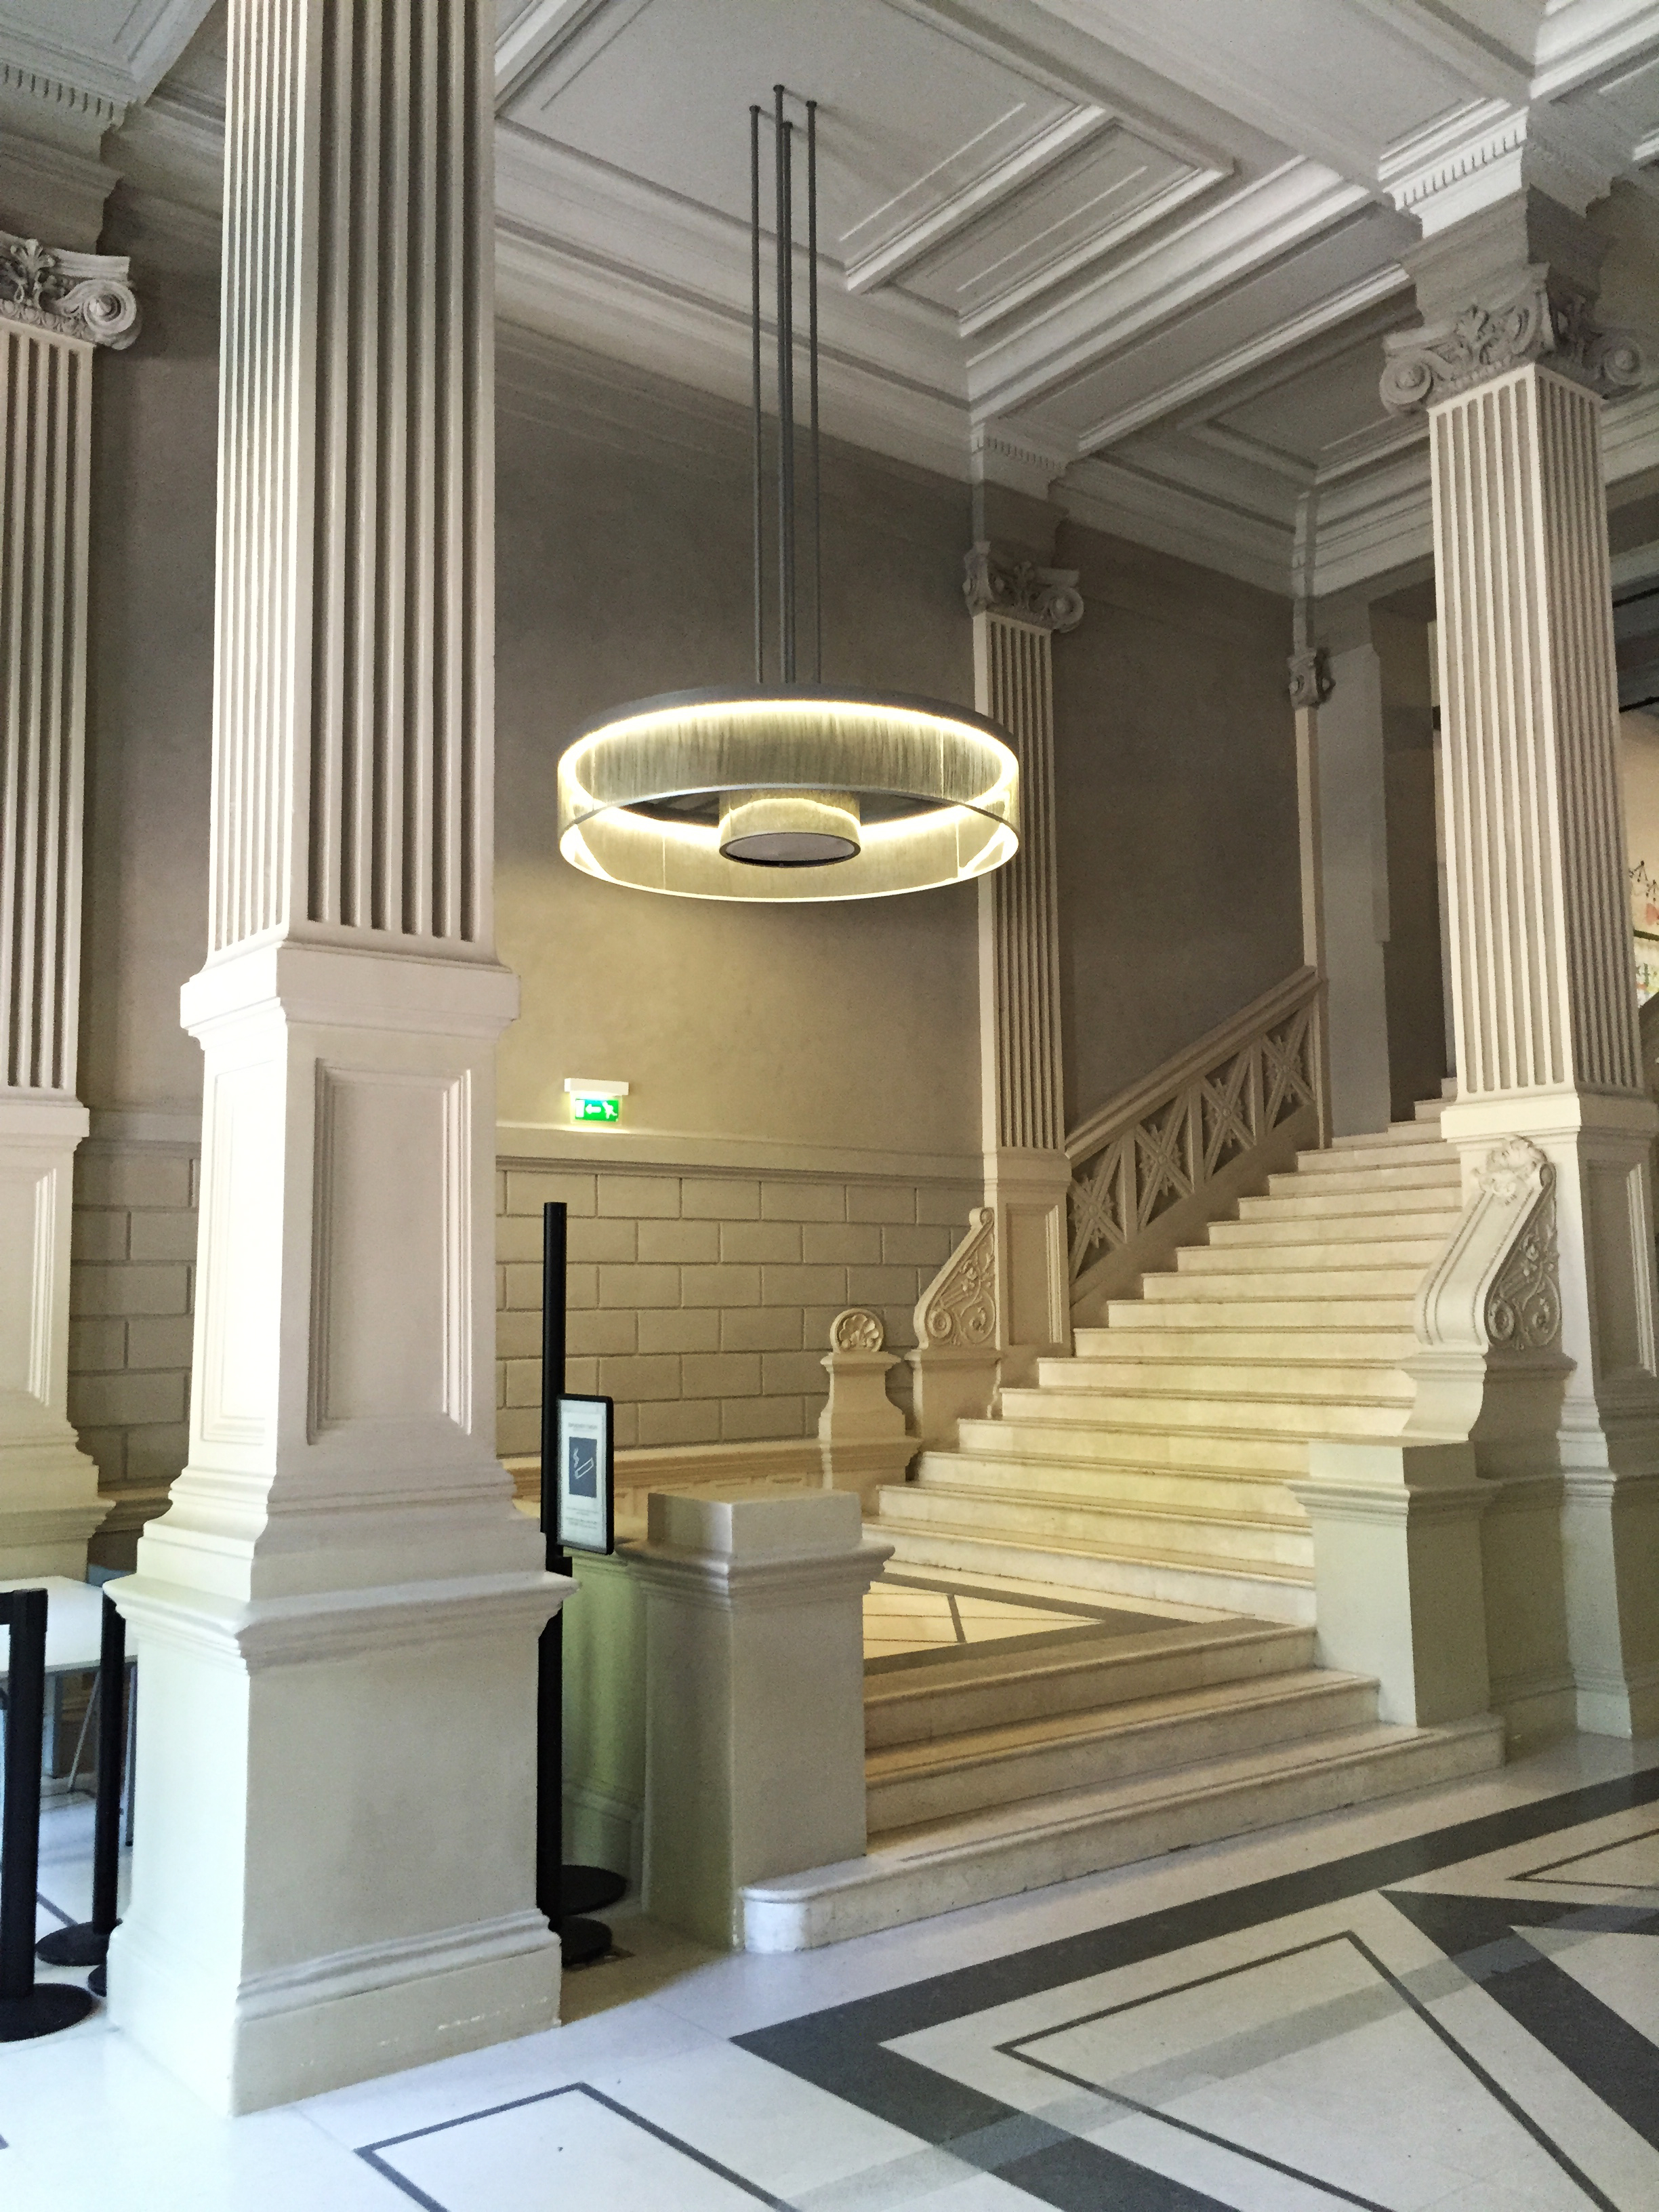 19th century staircase at the former theatre La Gaite Lyrique. Recently converted into a centre for digital arts, most of the building is singularly lacking in character but the staircase continues to express some life.